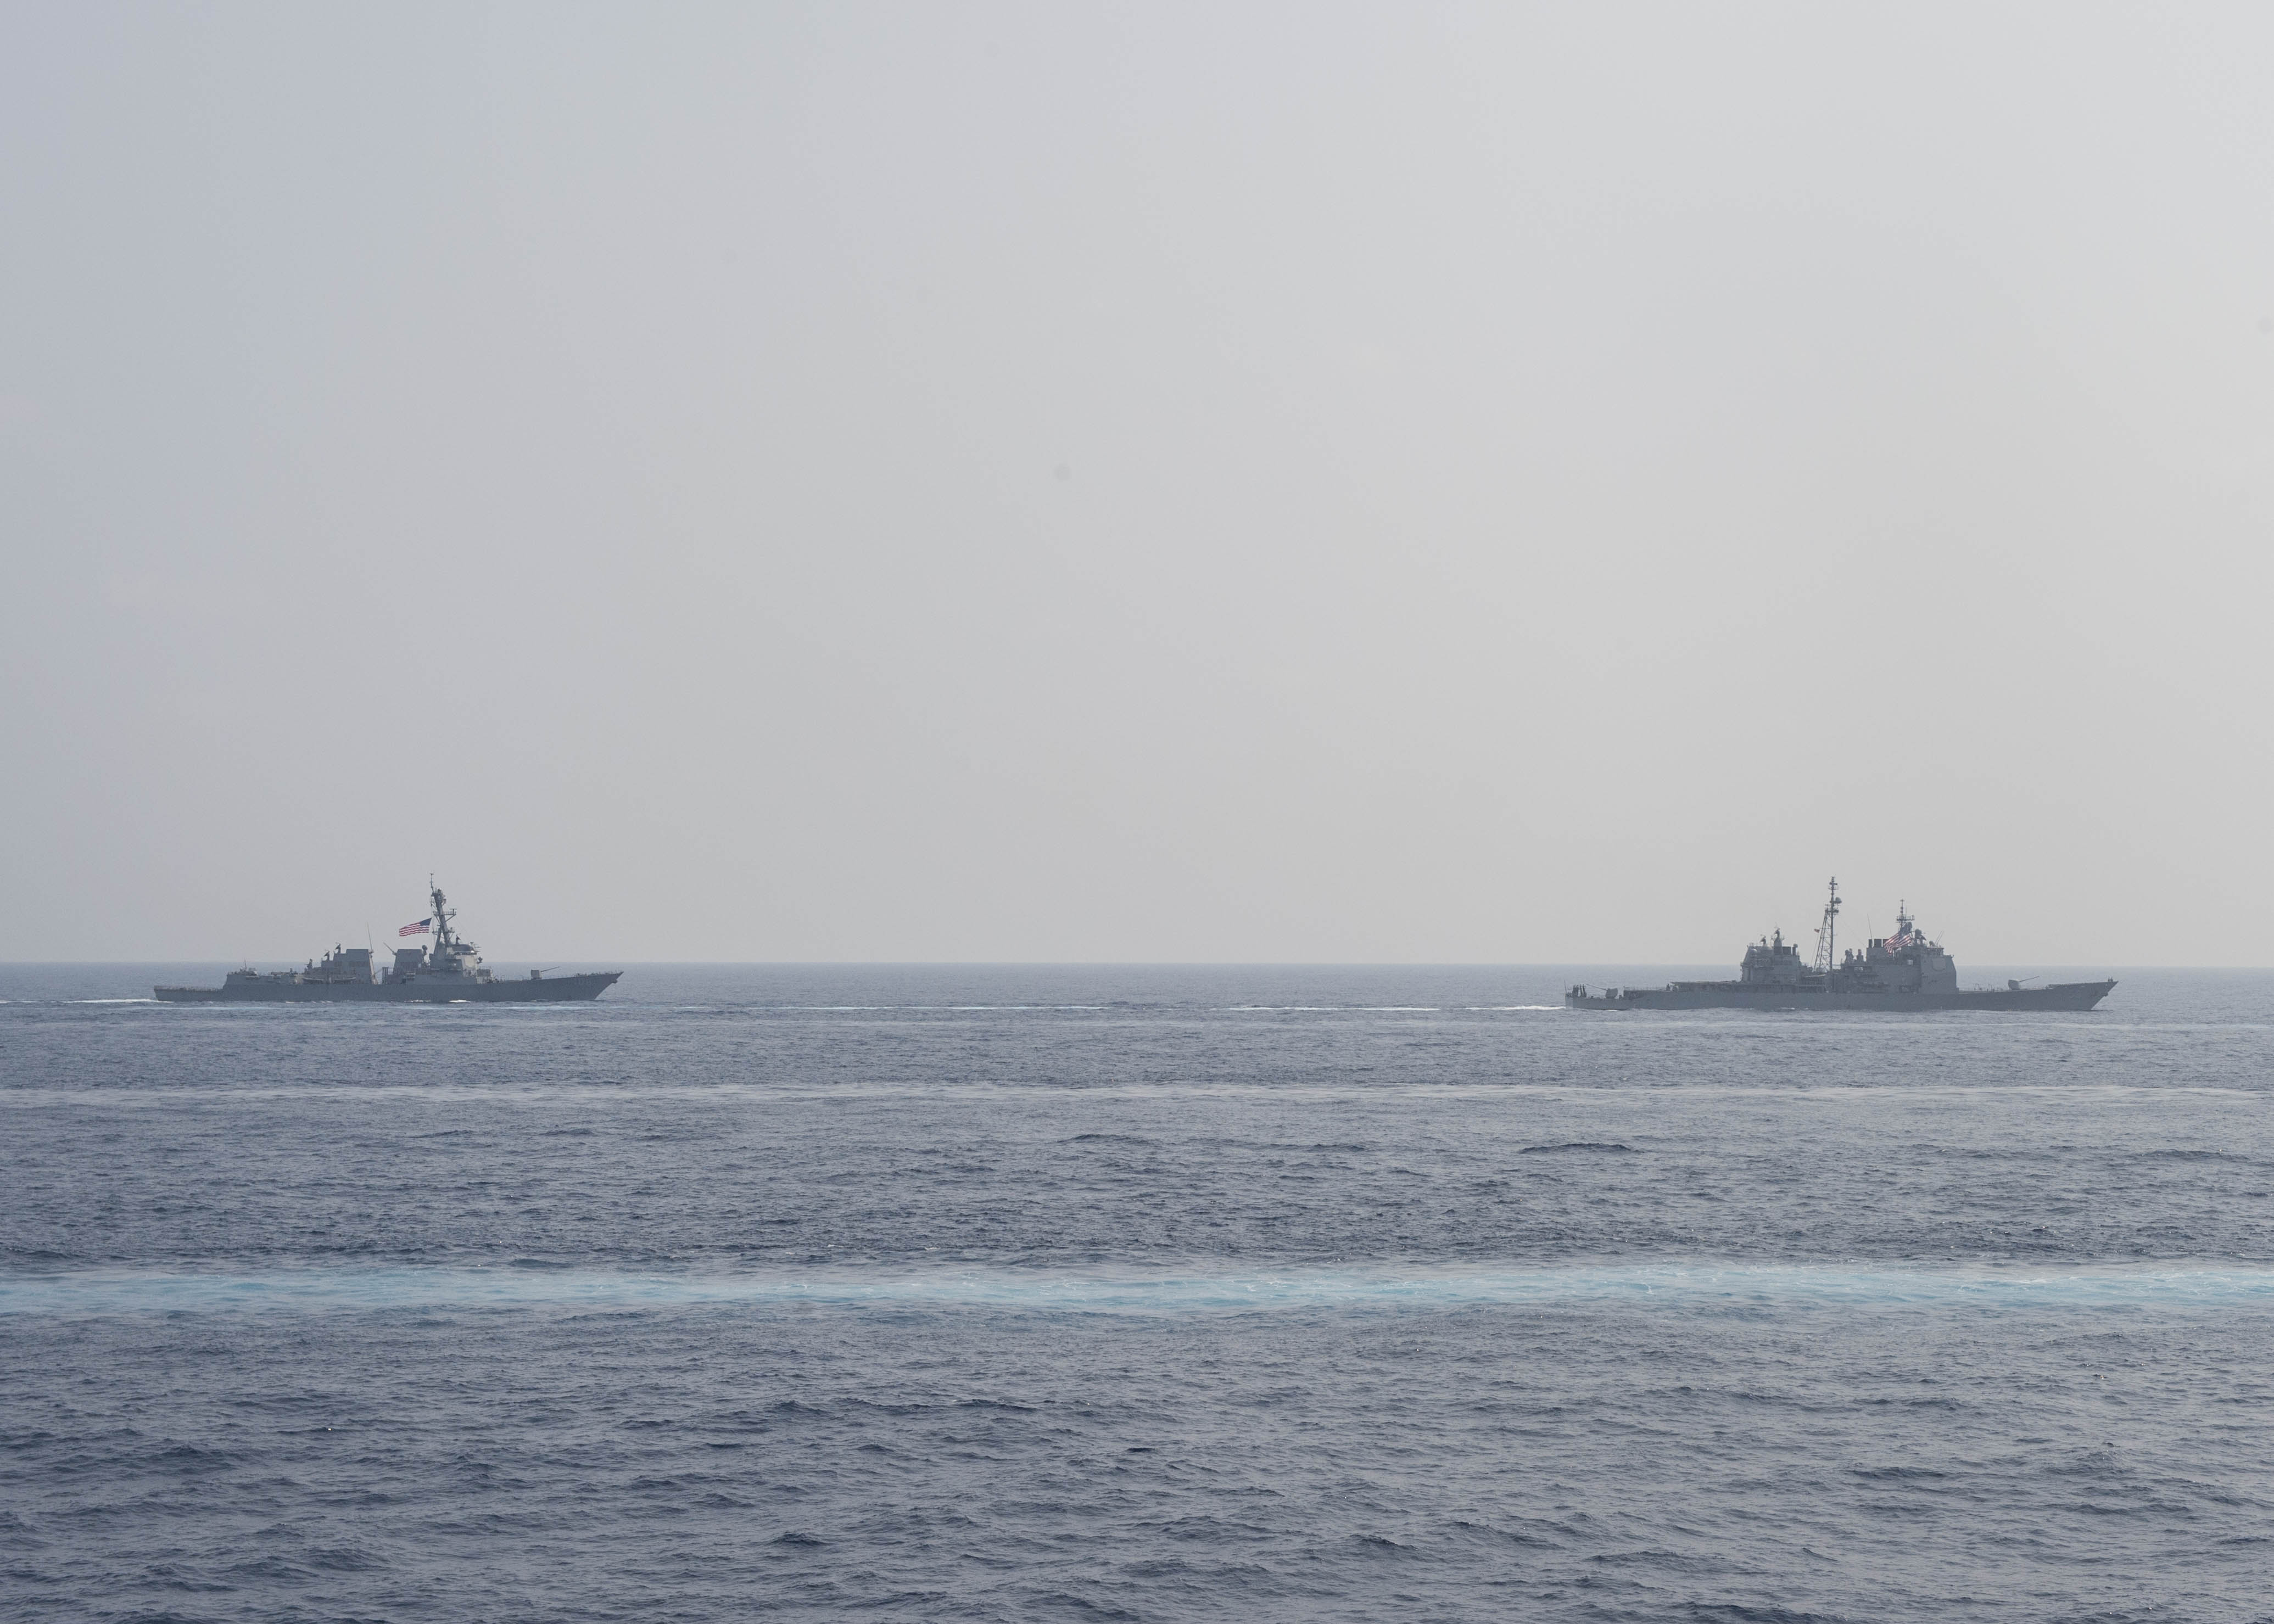 The guided-missile cruiser USS Mobile Bay (CG 53), right, and the guided-missile destroyer USS Stockdale (DDG 106) transit together in the Philippine Sea in March 2016. US Navy photo.